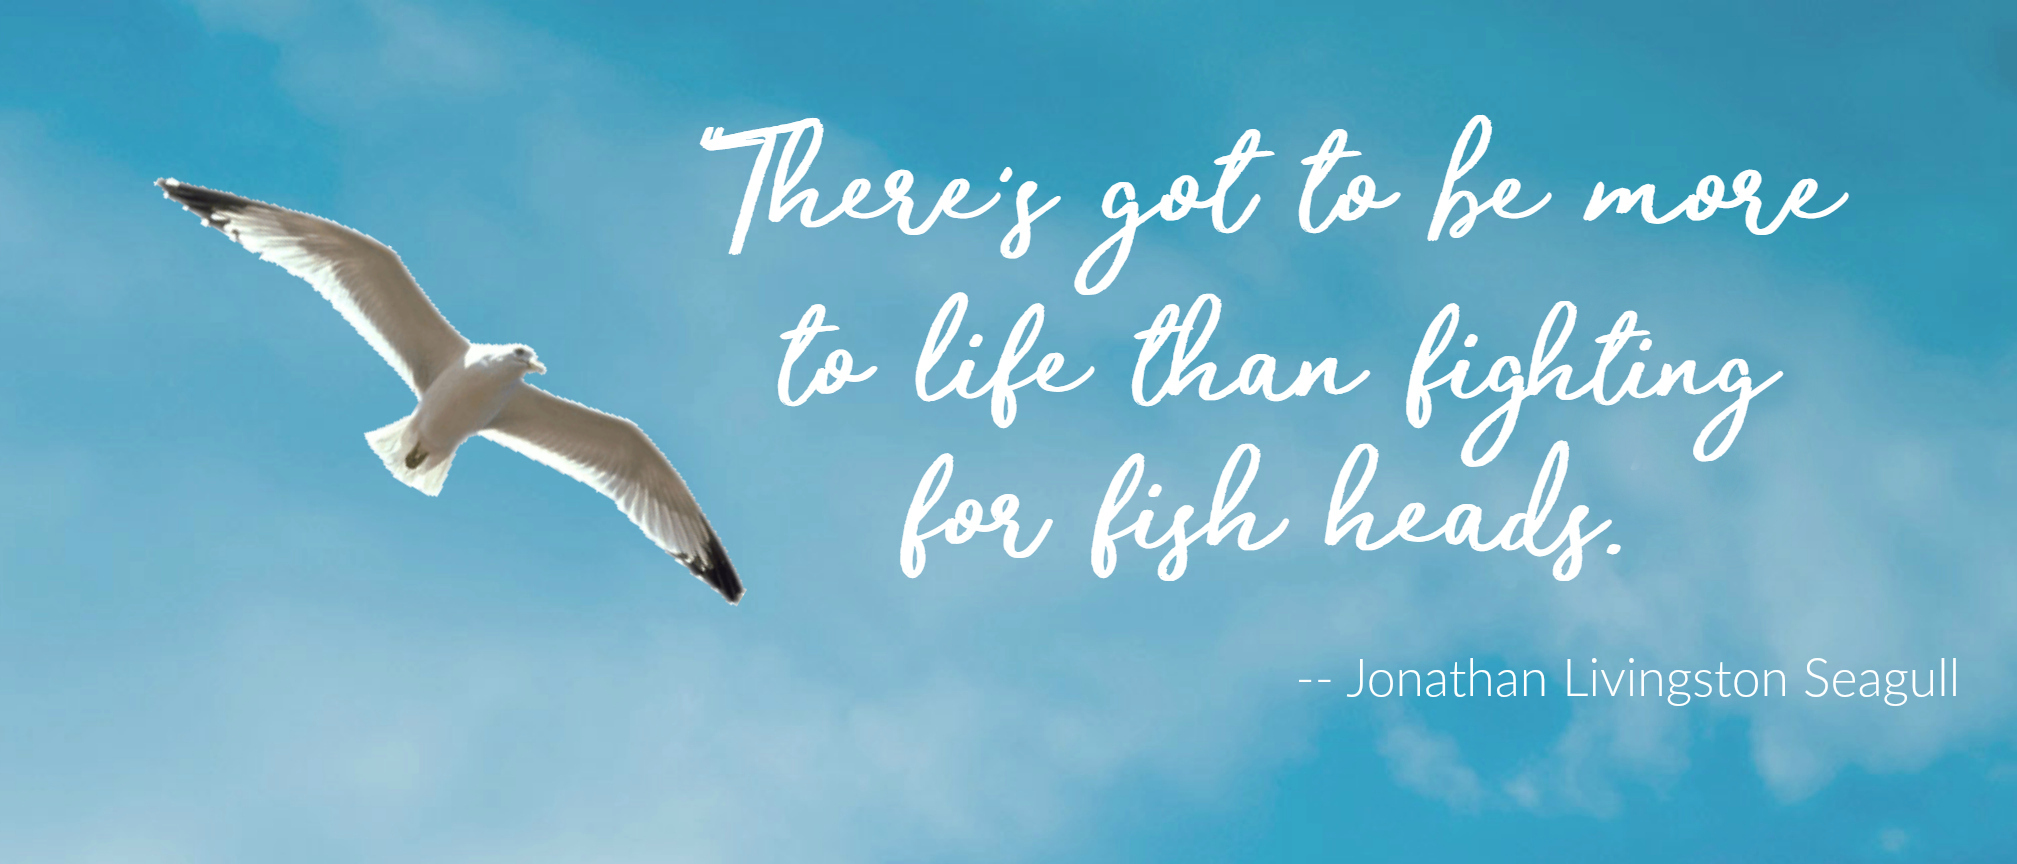 jonathon livingston seagull essay Jonathan livingston seagull overcame the hardship of learning to fly higher so he could get to his dream land i always have an english-chinese dictionary with me.